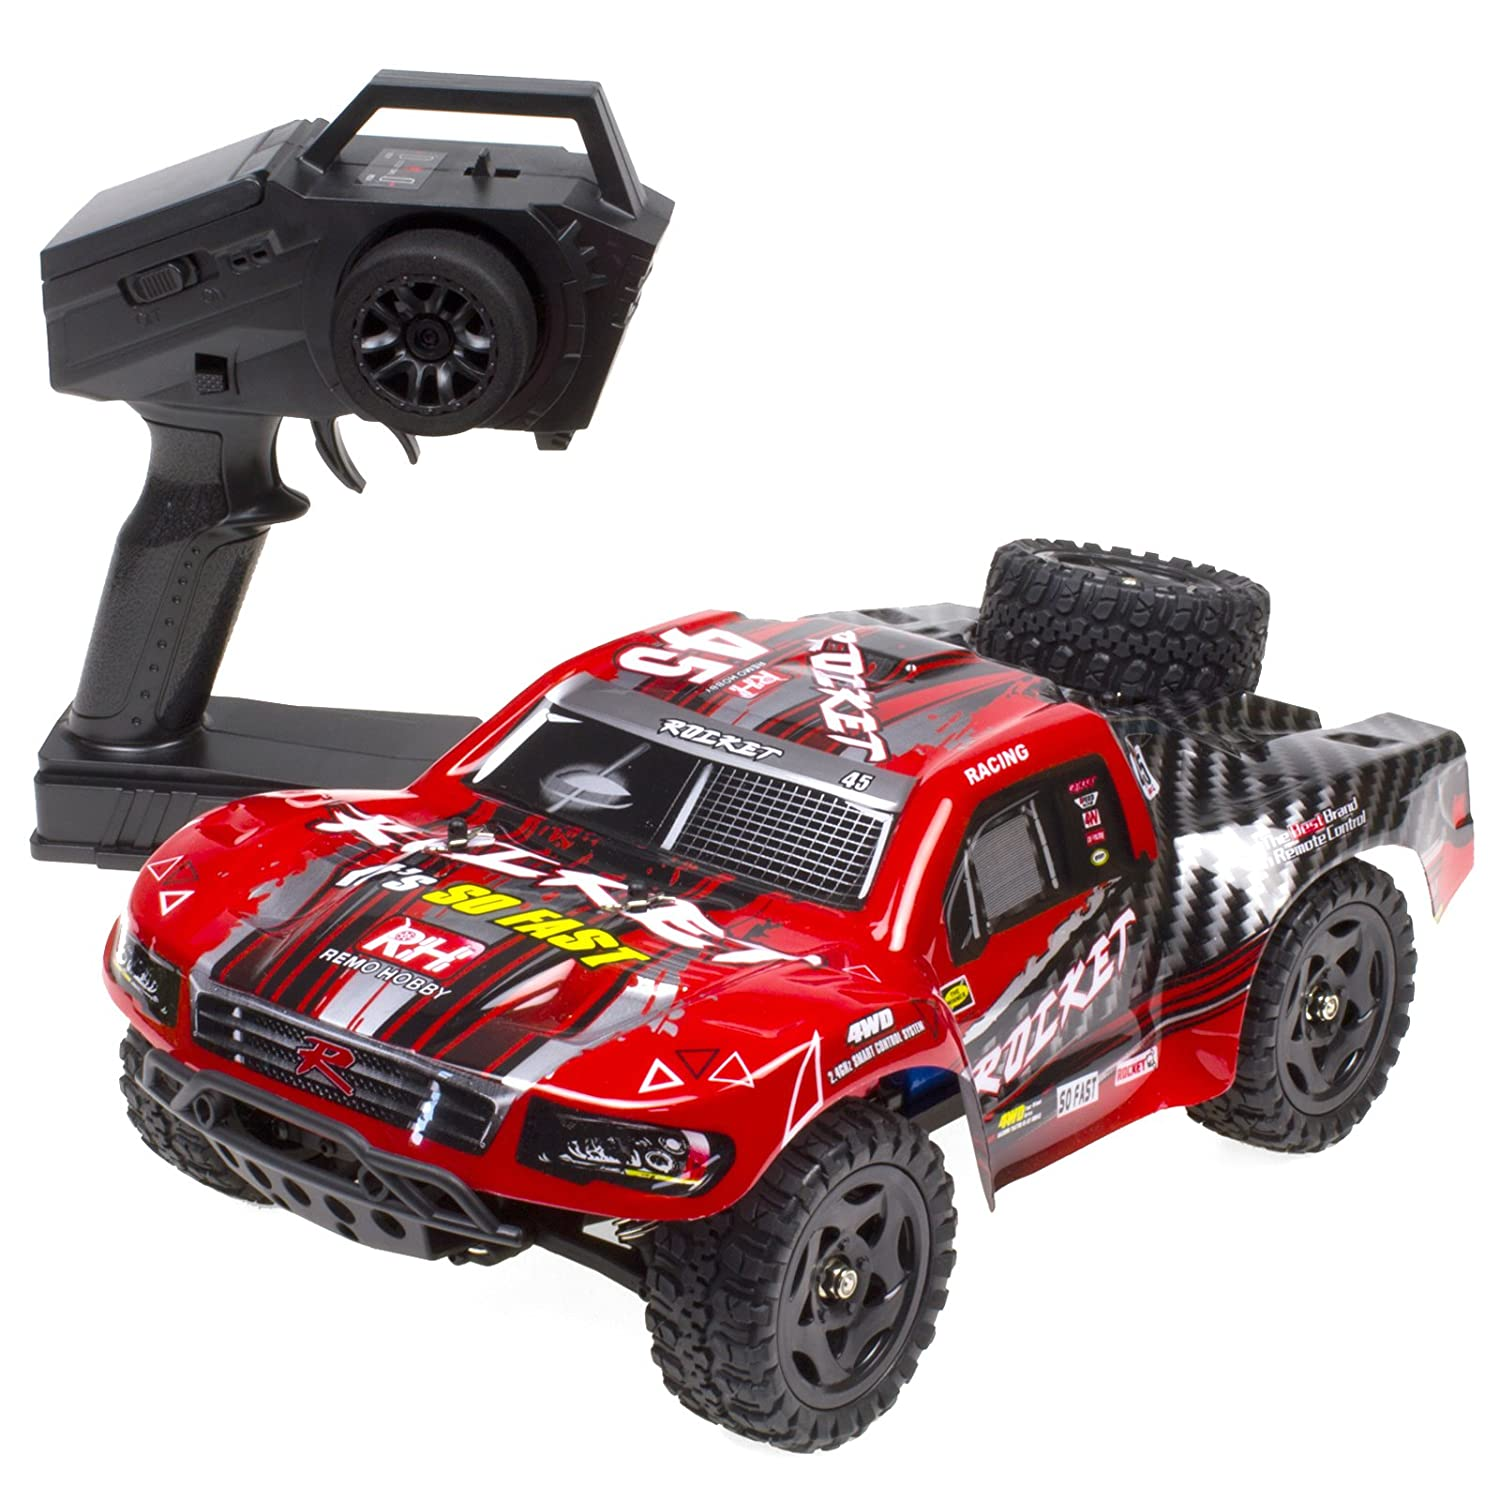 Image result for Cheerwing 1:16 2.4Ghz 4WD RC Truck High Speed Off-road Remote Control Car Short Course Truck